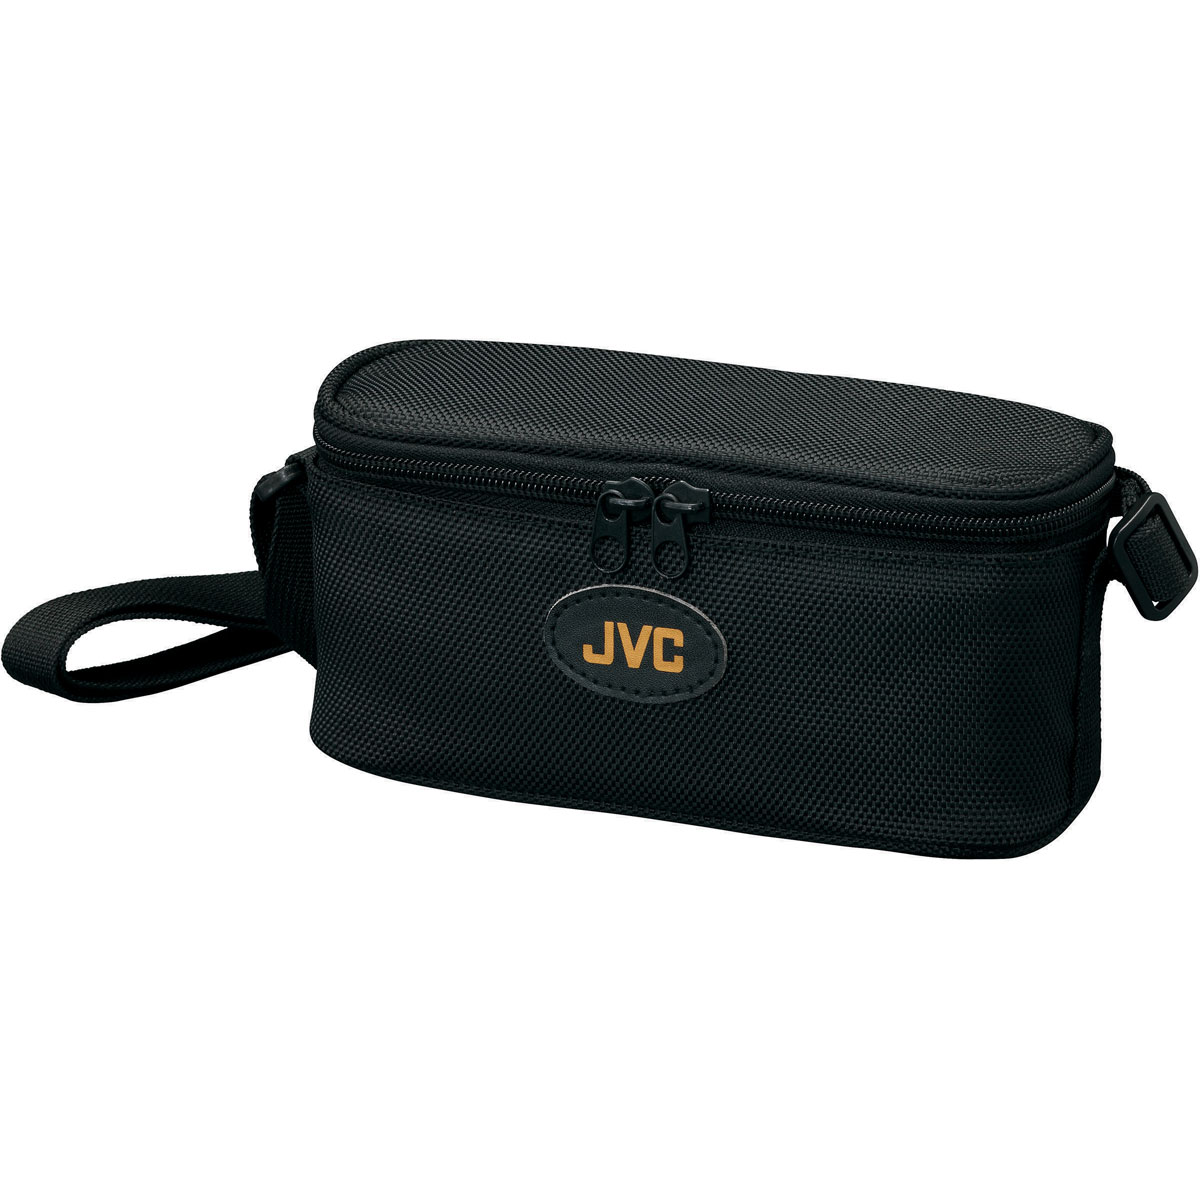 Jvc cb vm89 sacoche cam scope jvc sur ldlc for Housse camescope